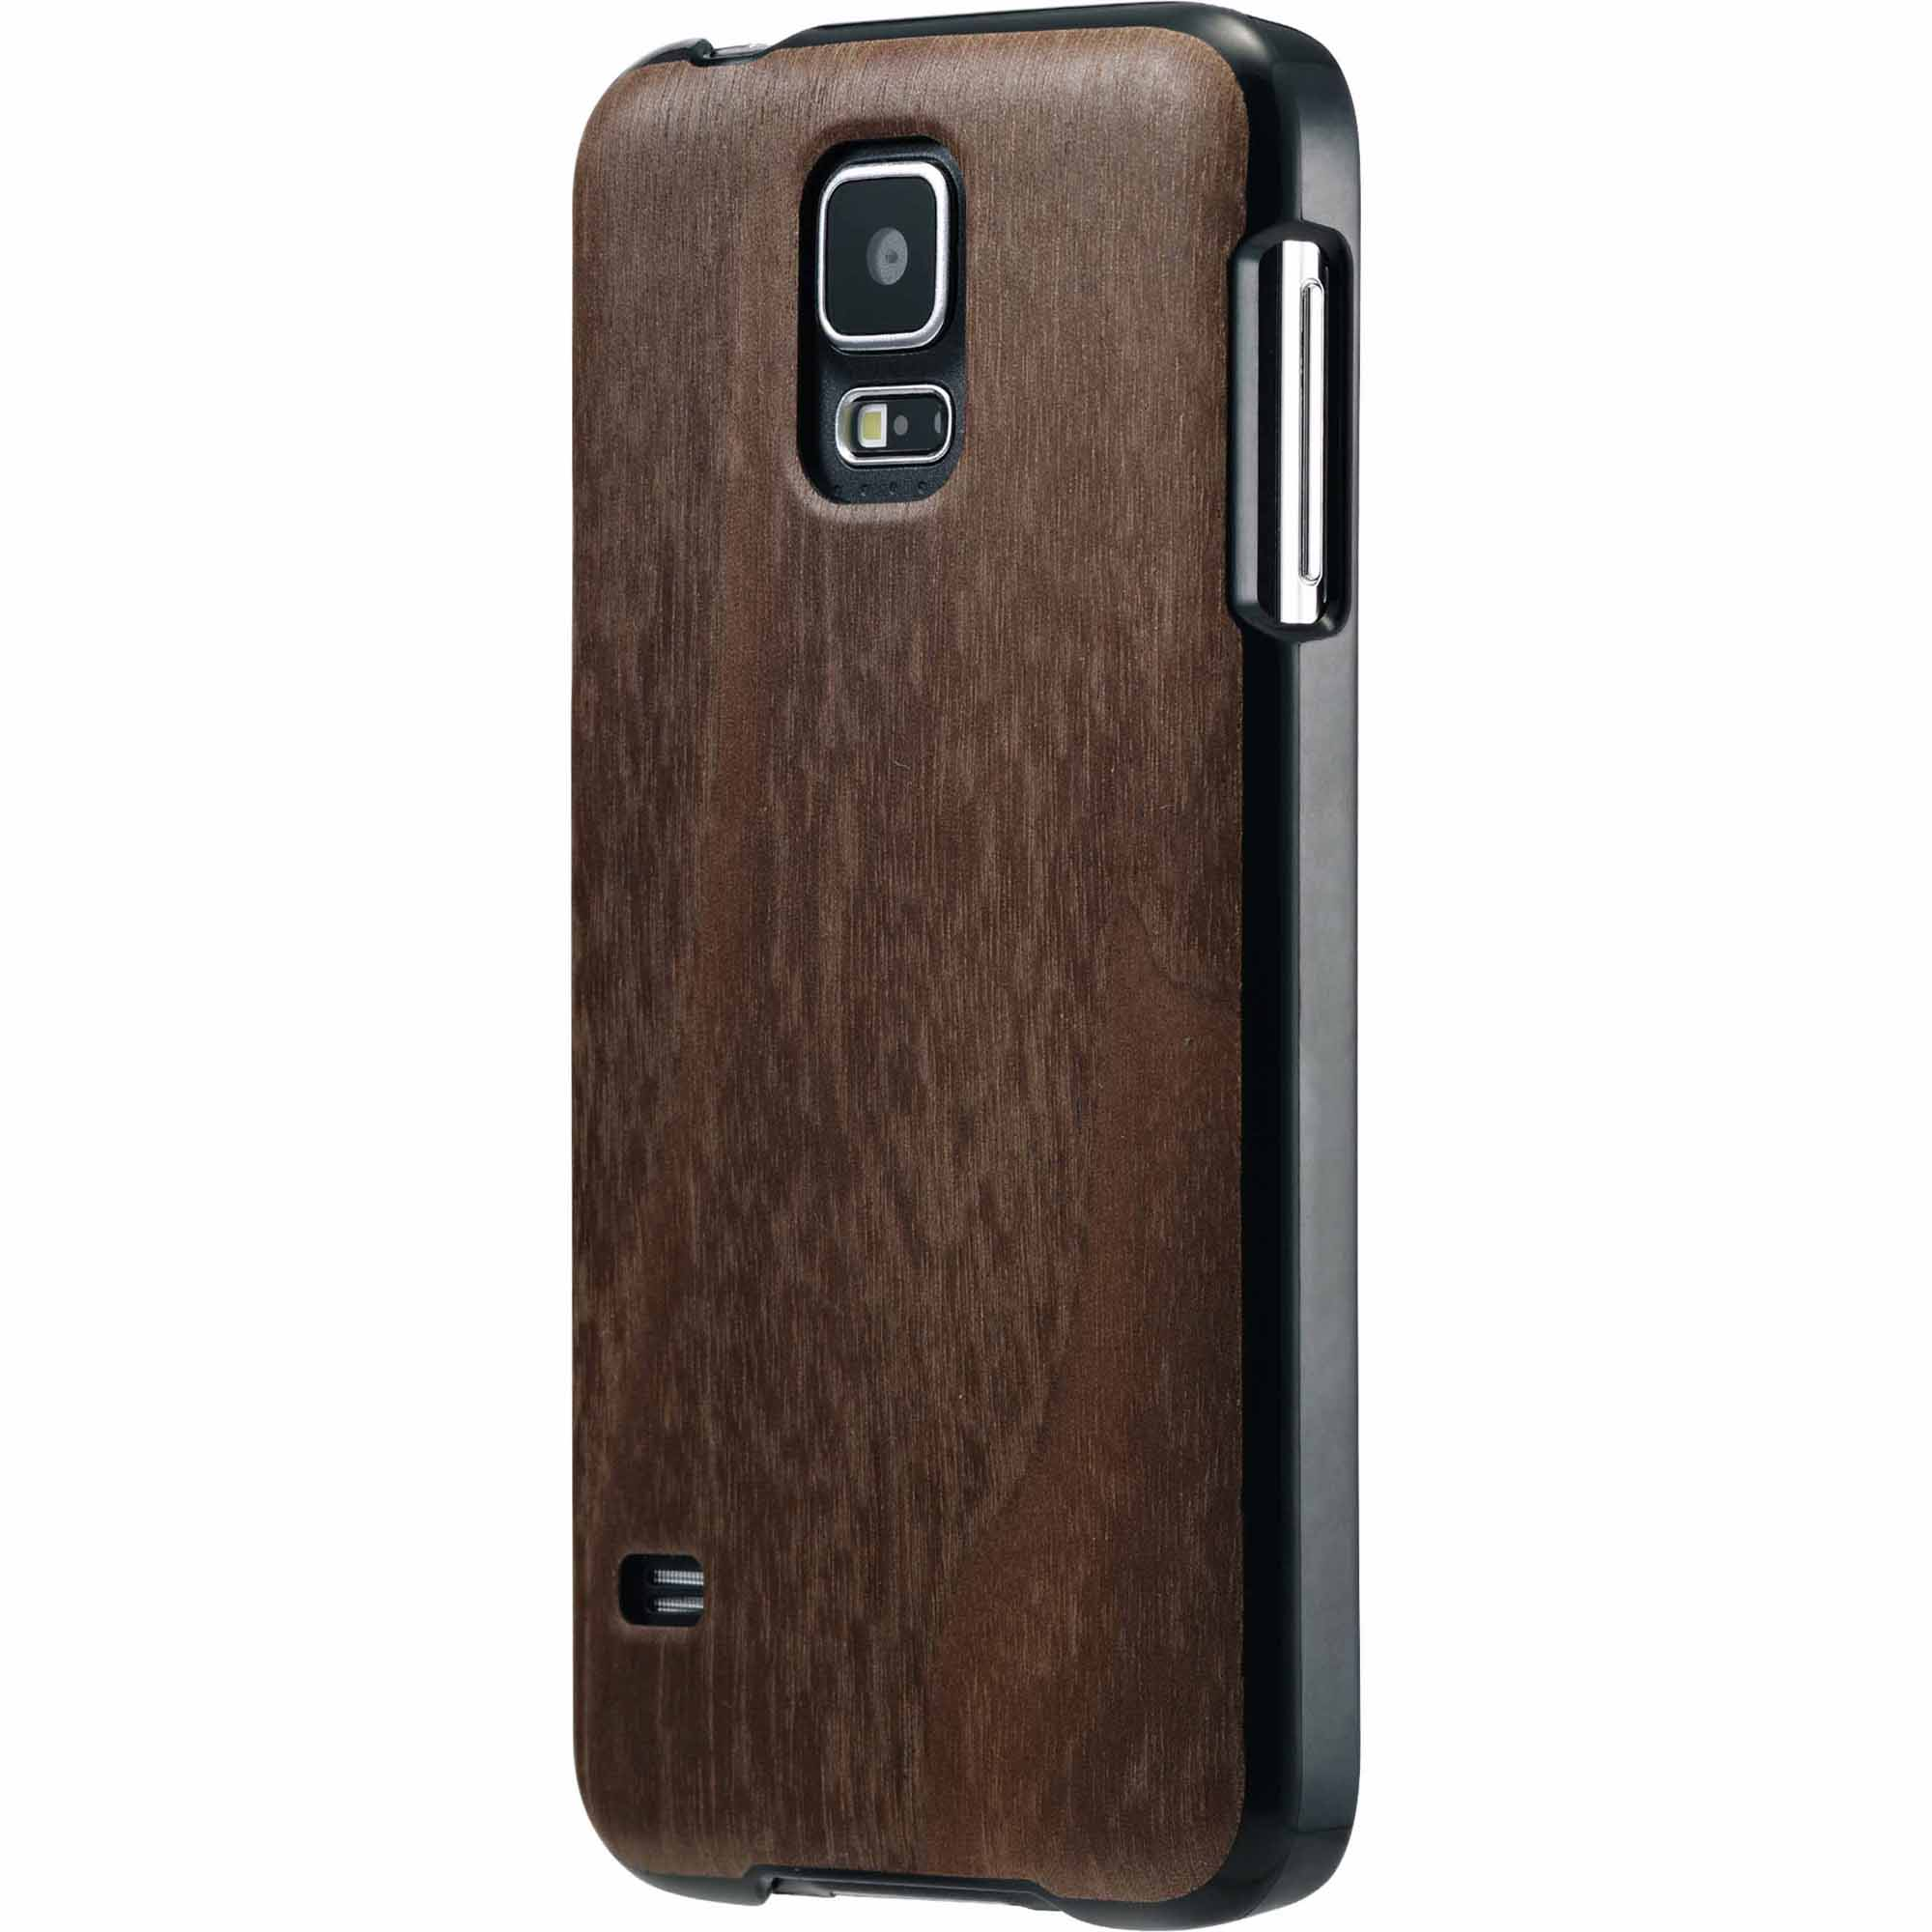 Agent 18 SlimShield Case for Galaxy 5 - Craftsman